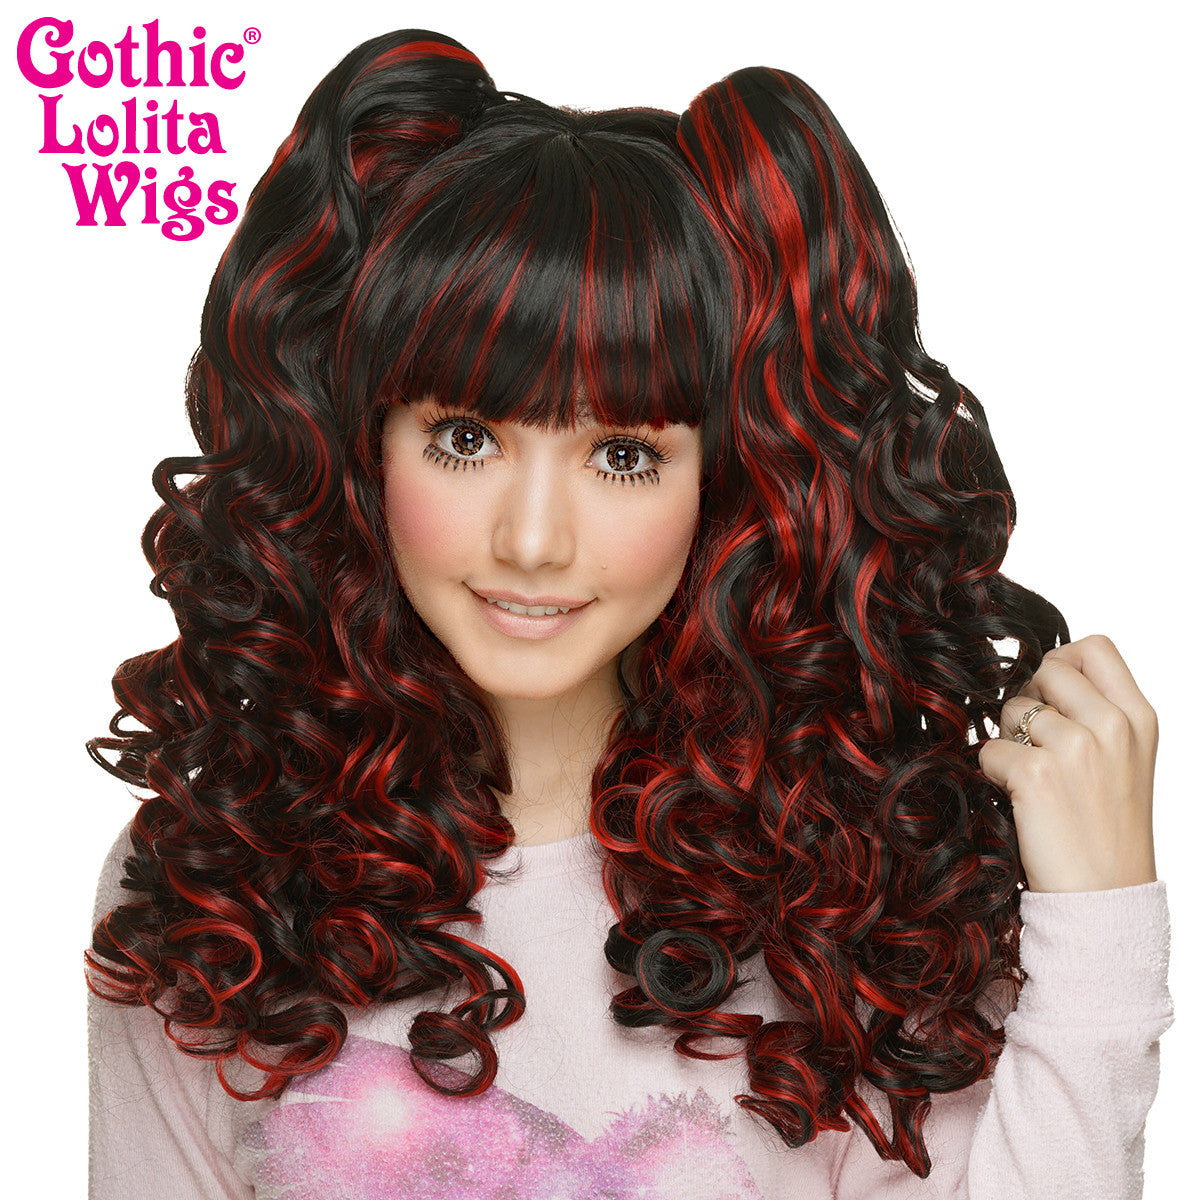 Gothic Lolita Wigs® <br> Baby Dollight™ Collection -Black & Red Blend -00003